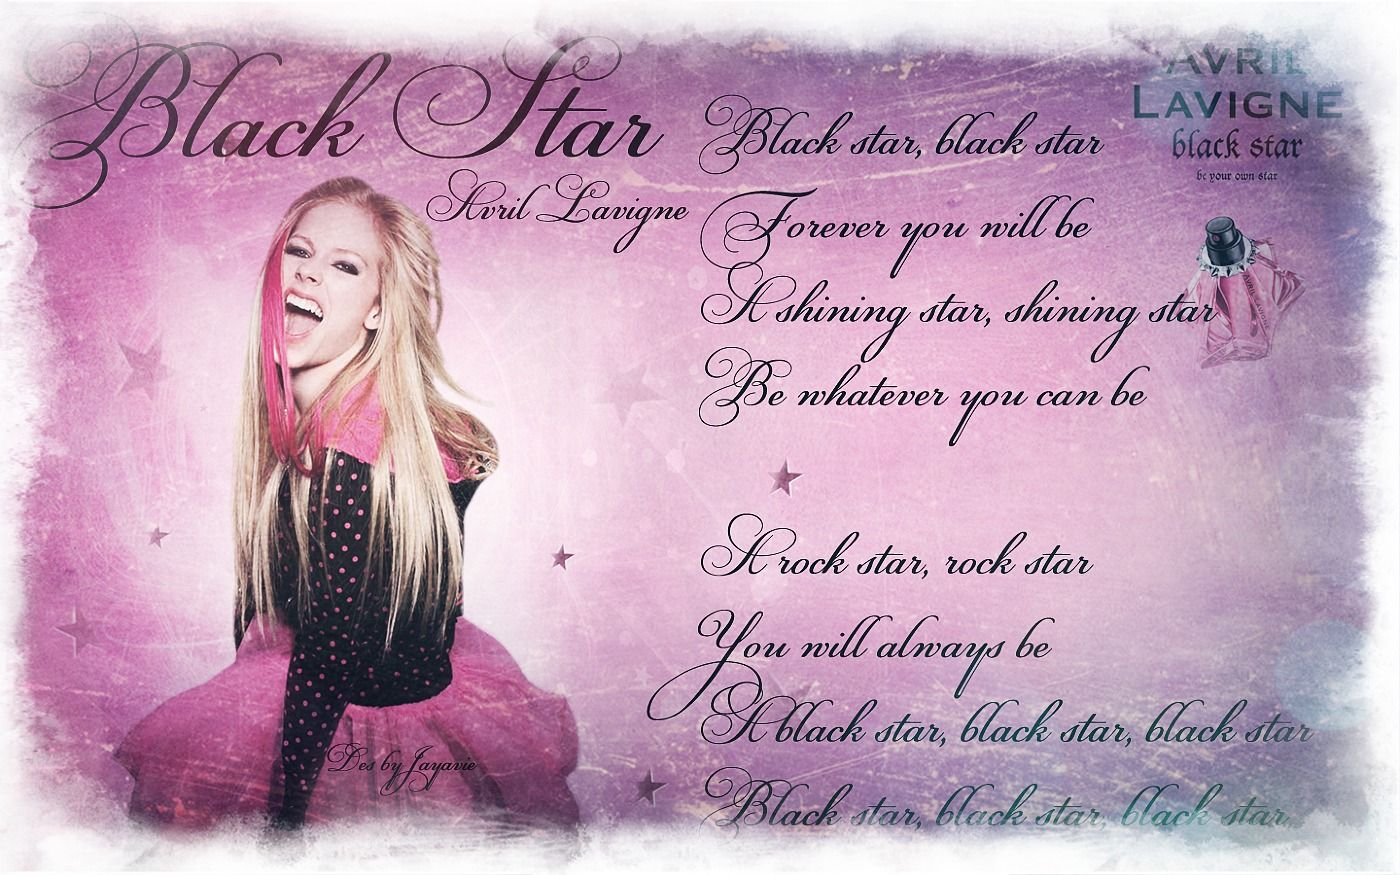 Black Star Avril Lavigne Black star, Music is life